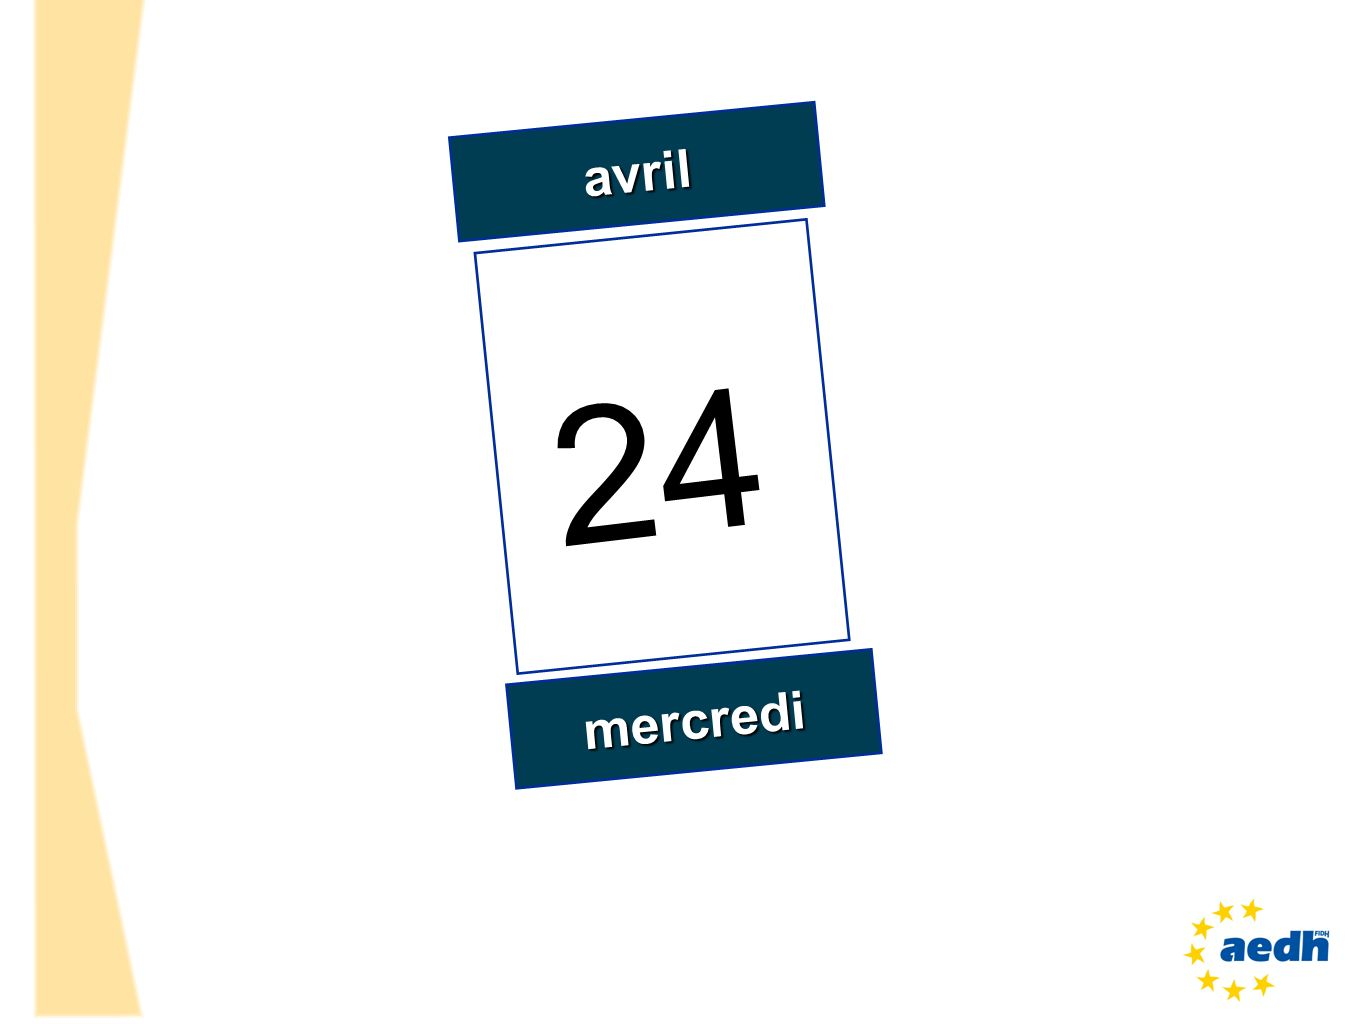 avril 24 mercredi